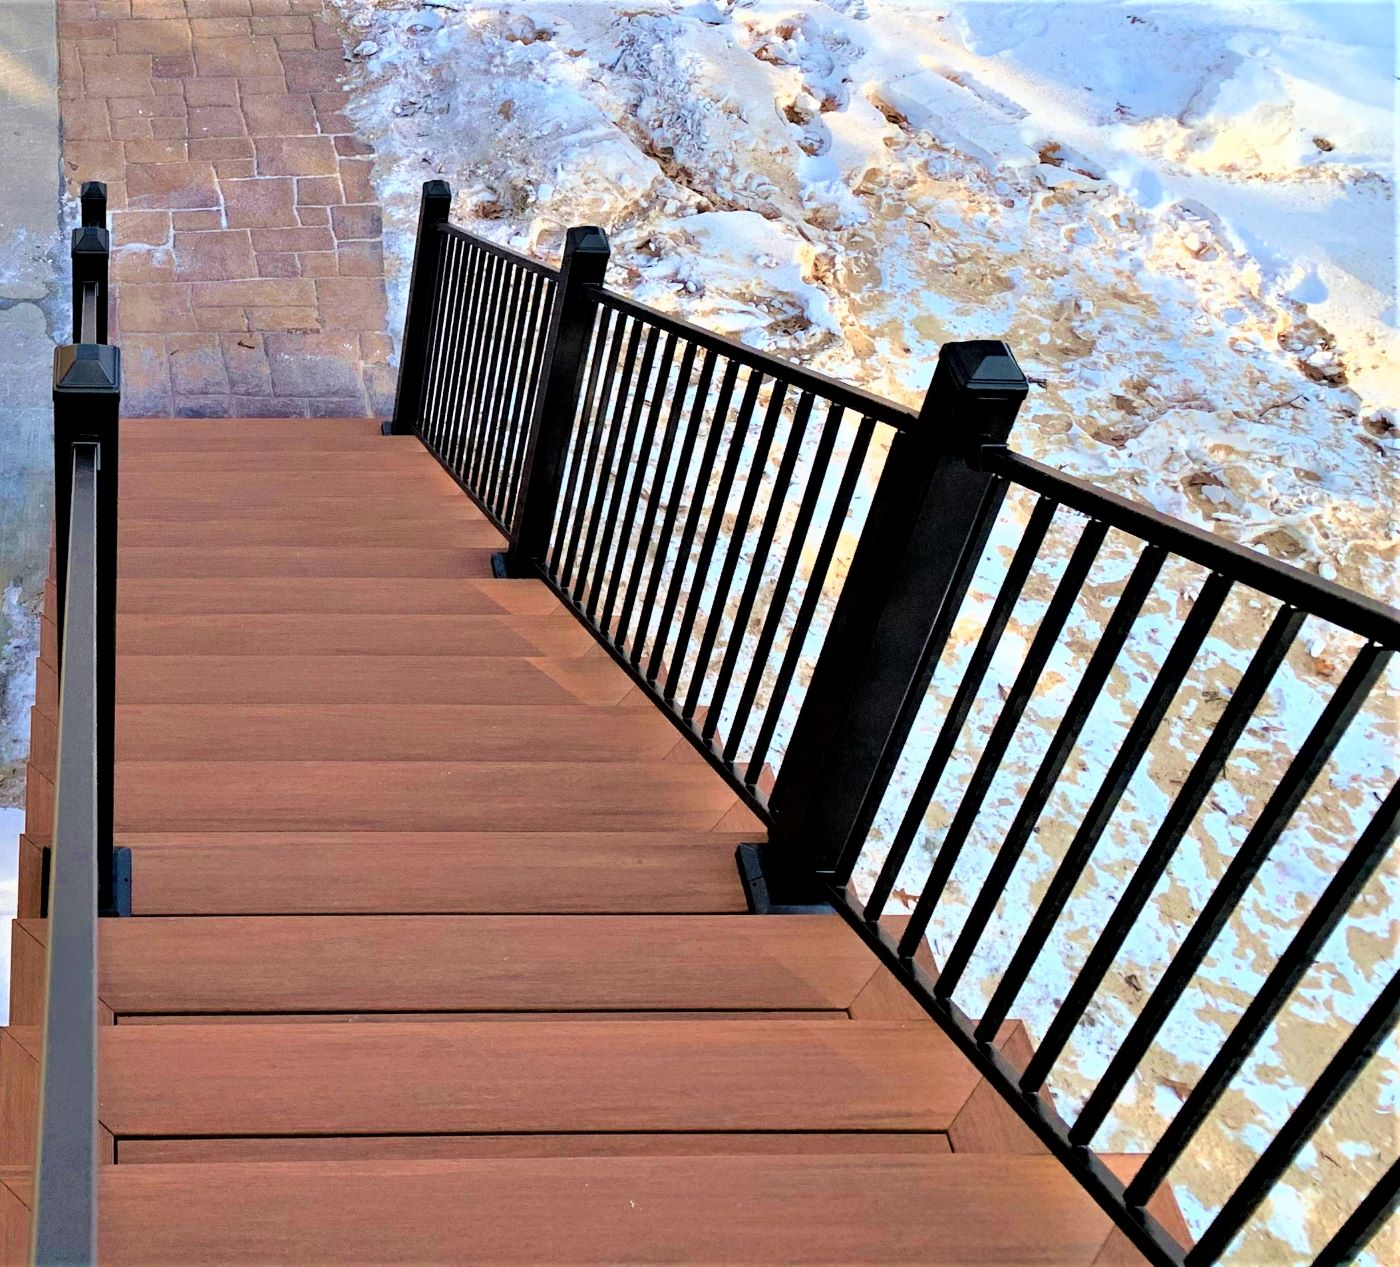 winter deck